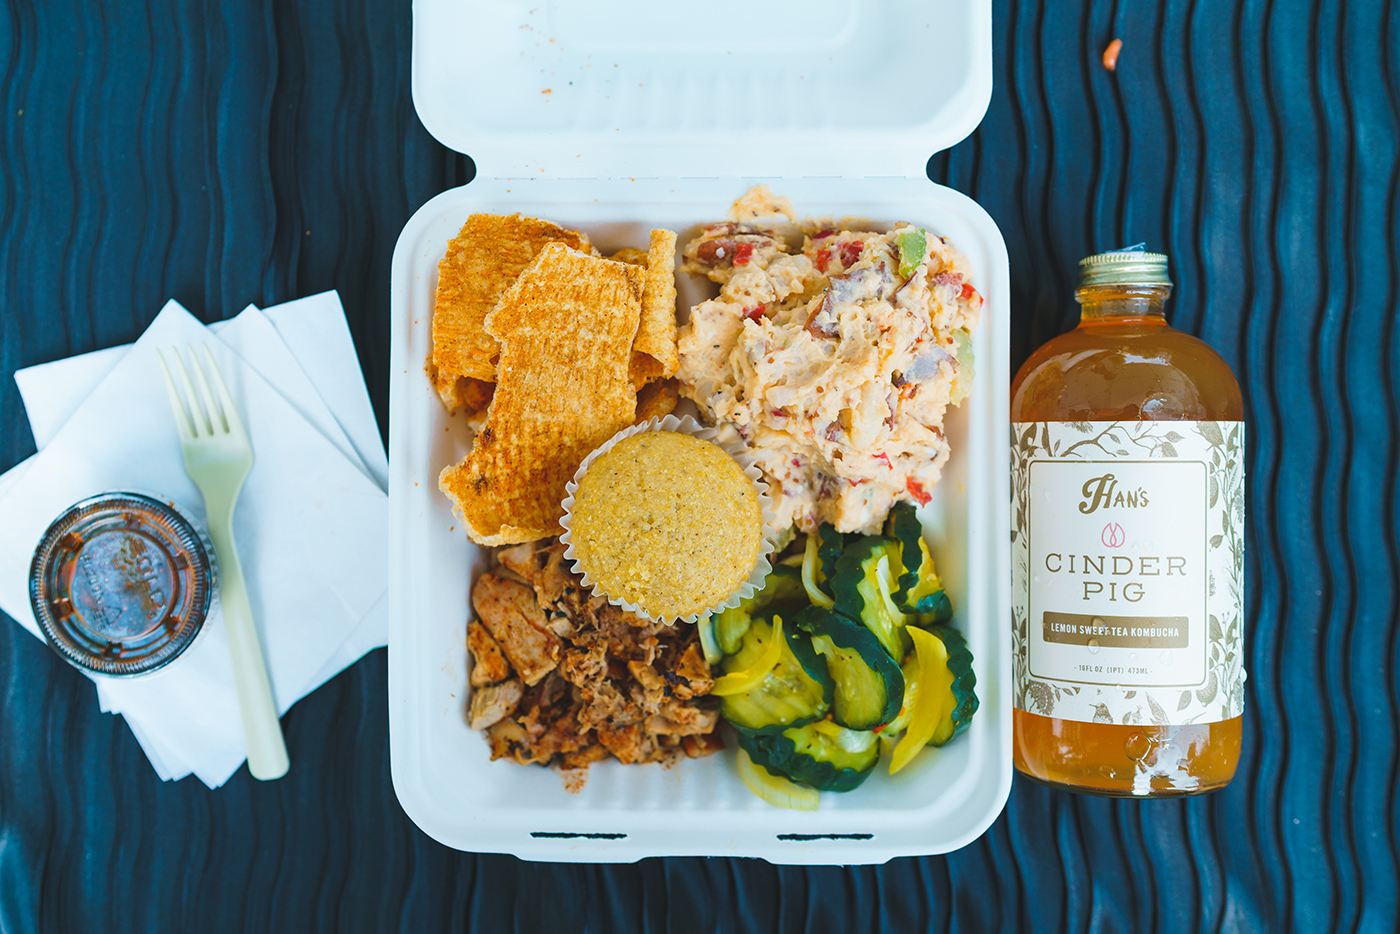 Cinder Pig's Pork Plate has all the fixings for a filling meal. Paired with their Han's Kombucha collaboration, this meal really hits the spot!